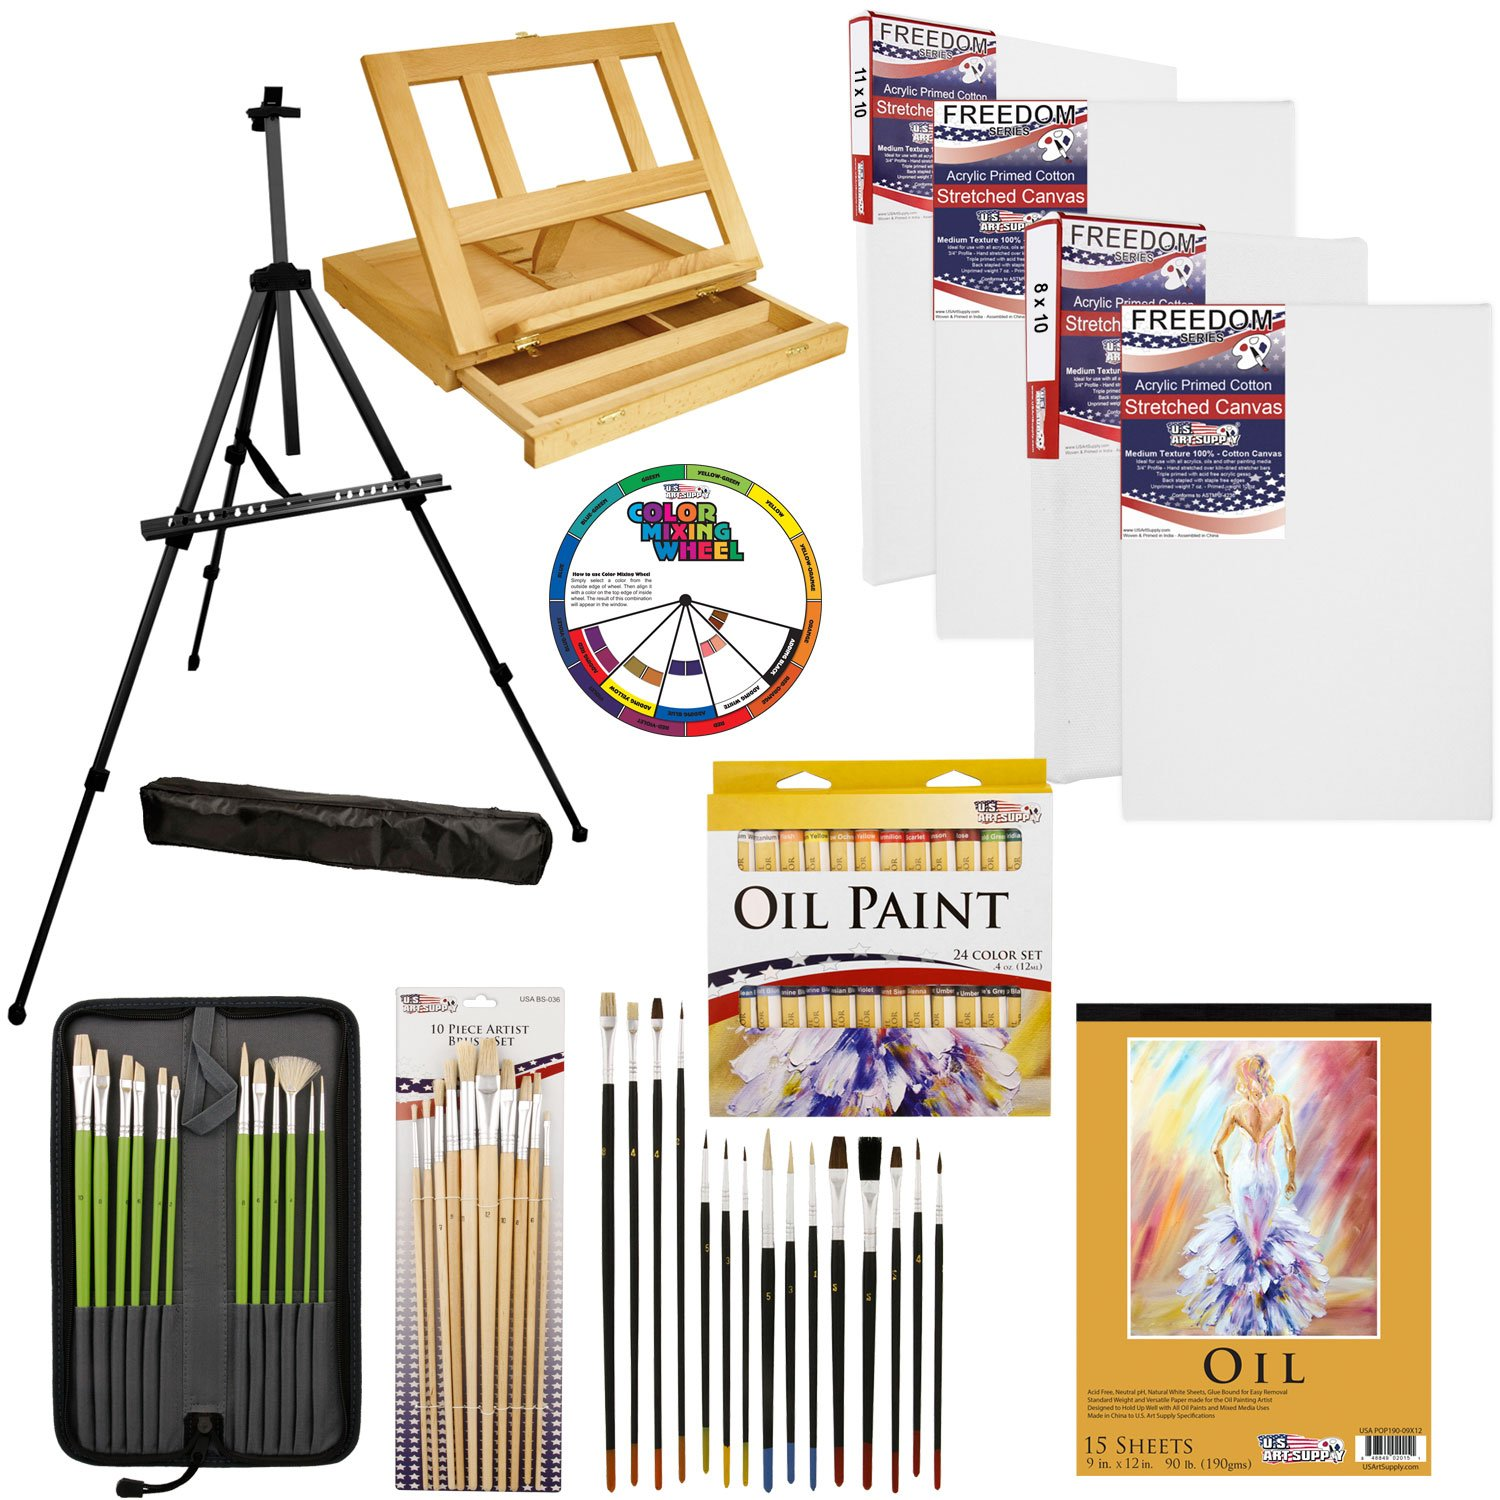 U.S. Art Supply 70-Piece Oil Painting Set with Aluminum Floor Easel, Wood Table Easel, 24 Oil Paint Colors, Oil Painting Pad, 8''x10'' Stretched Canvases, 11''x14'' Stretched Canvases, Artist Brushes